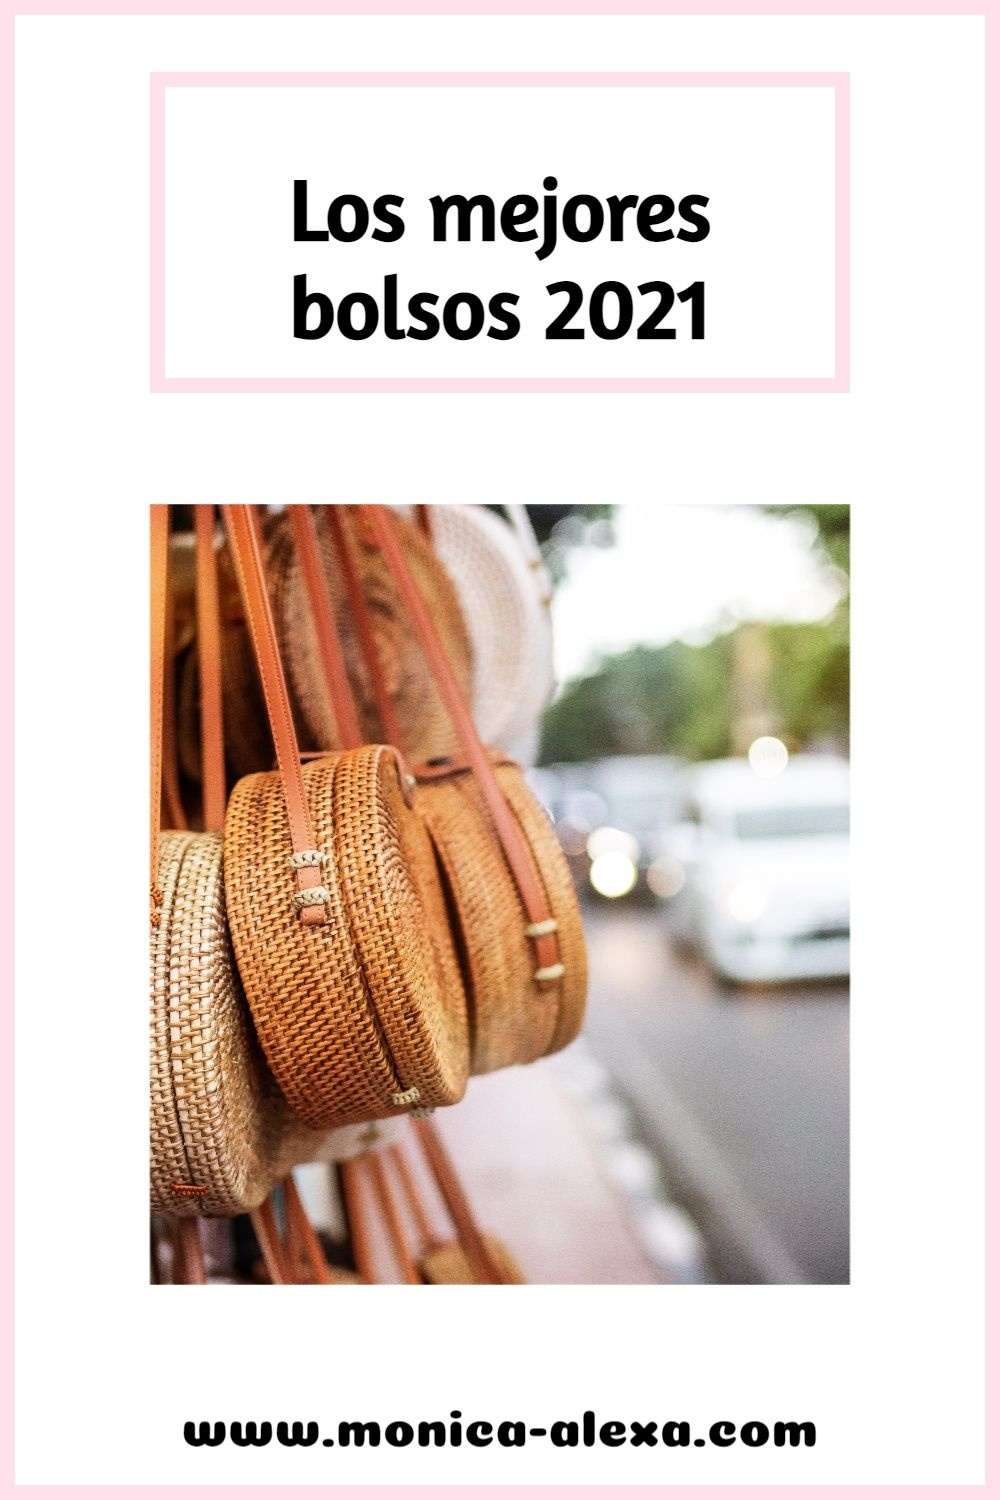 Women's fashion Pinterest Pin image created by Mónica using a Tailwind Create design template in 2021.